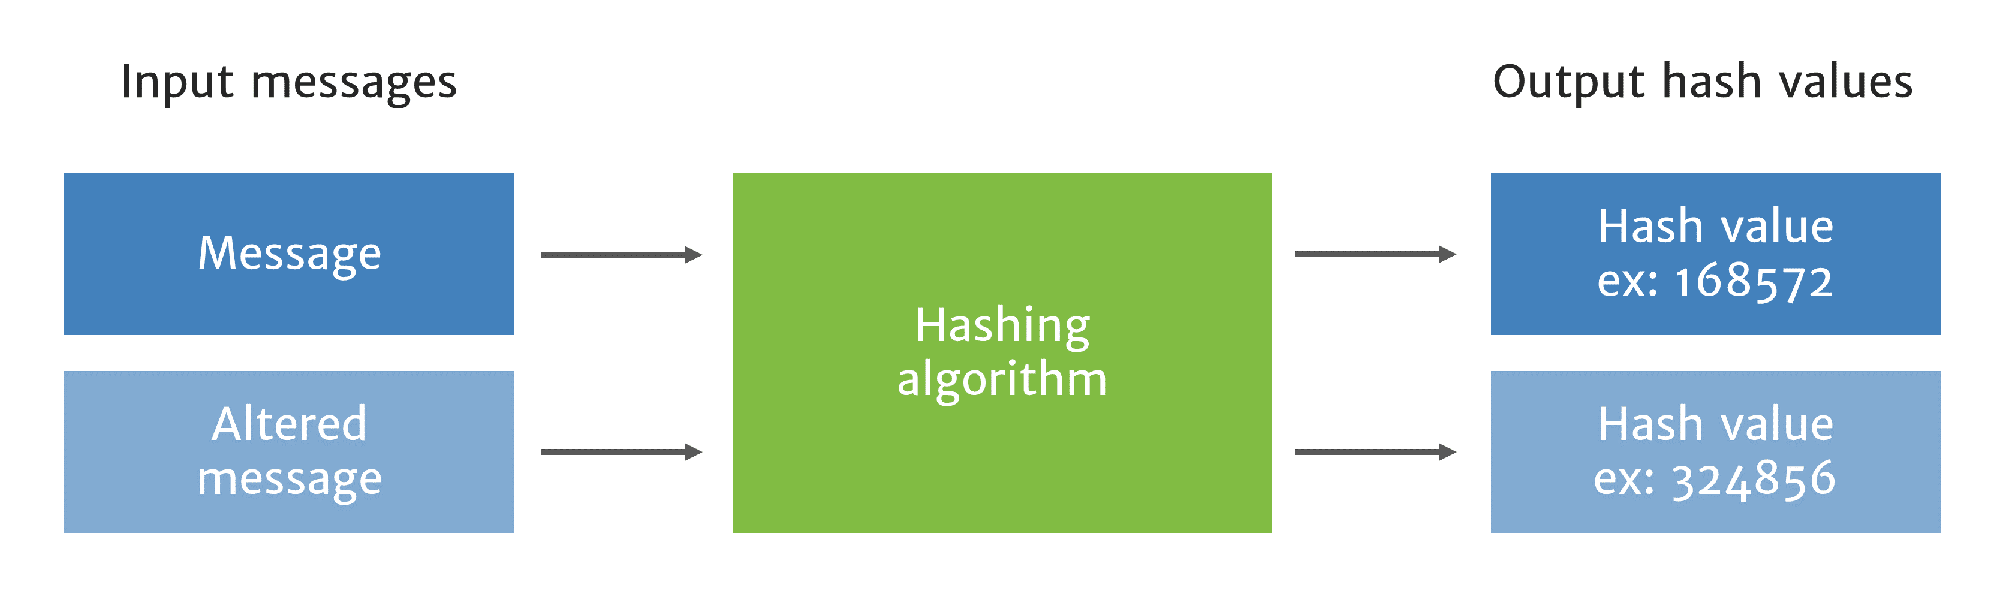 Hashing diagram